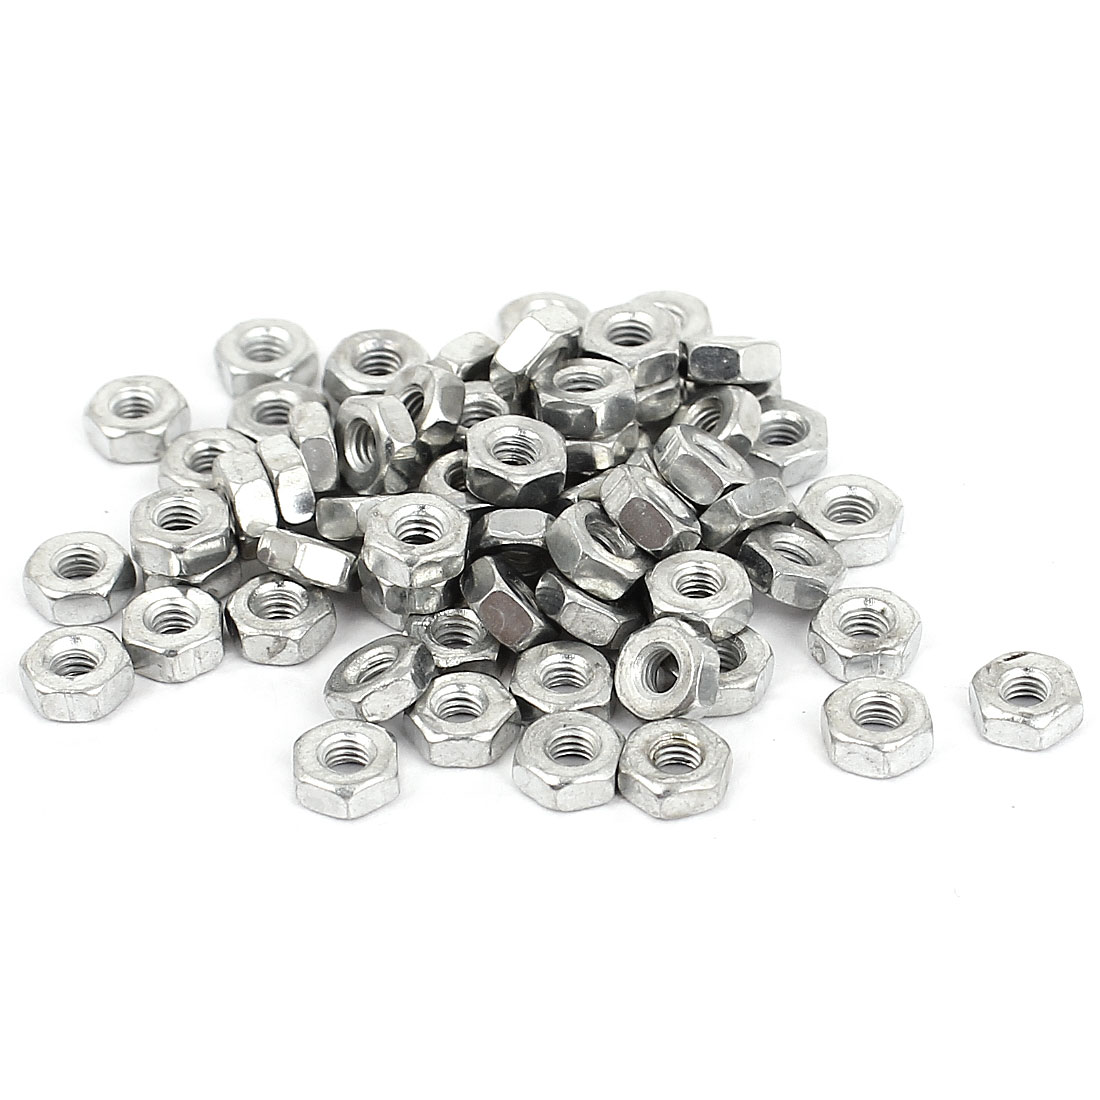 Uxcell 2mm Female Thread Hex Full Nuts Metal Fastener for Screws Bolts (70-pack)